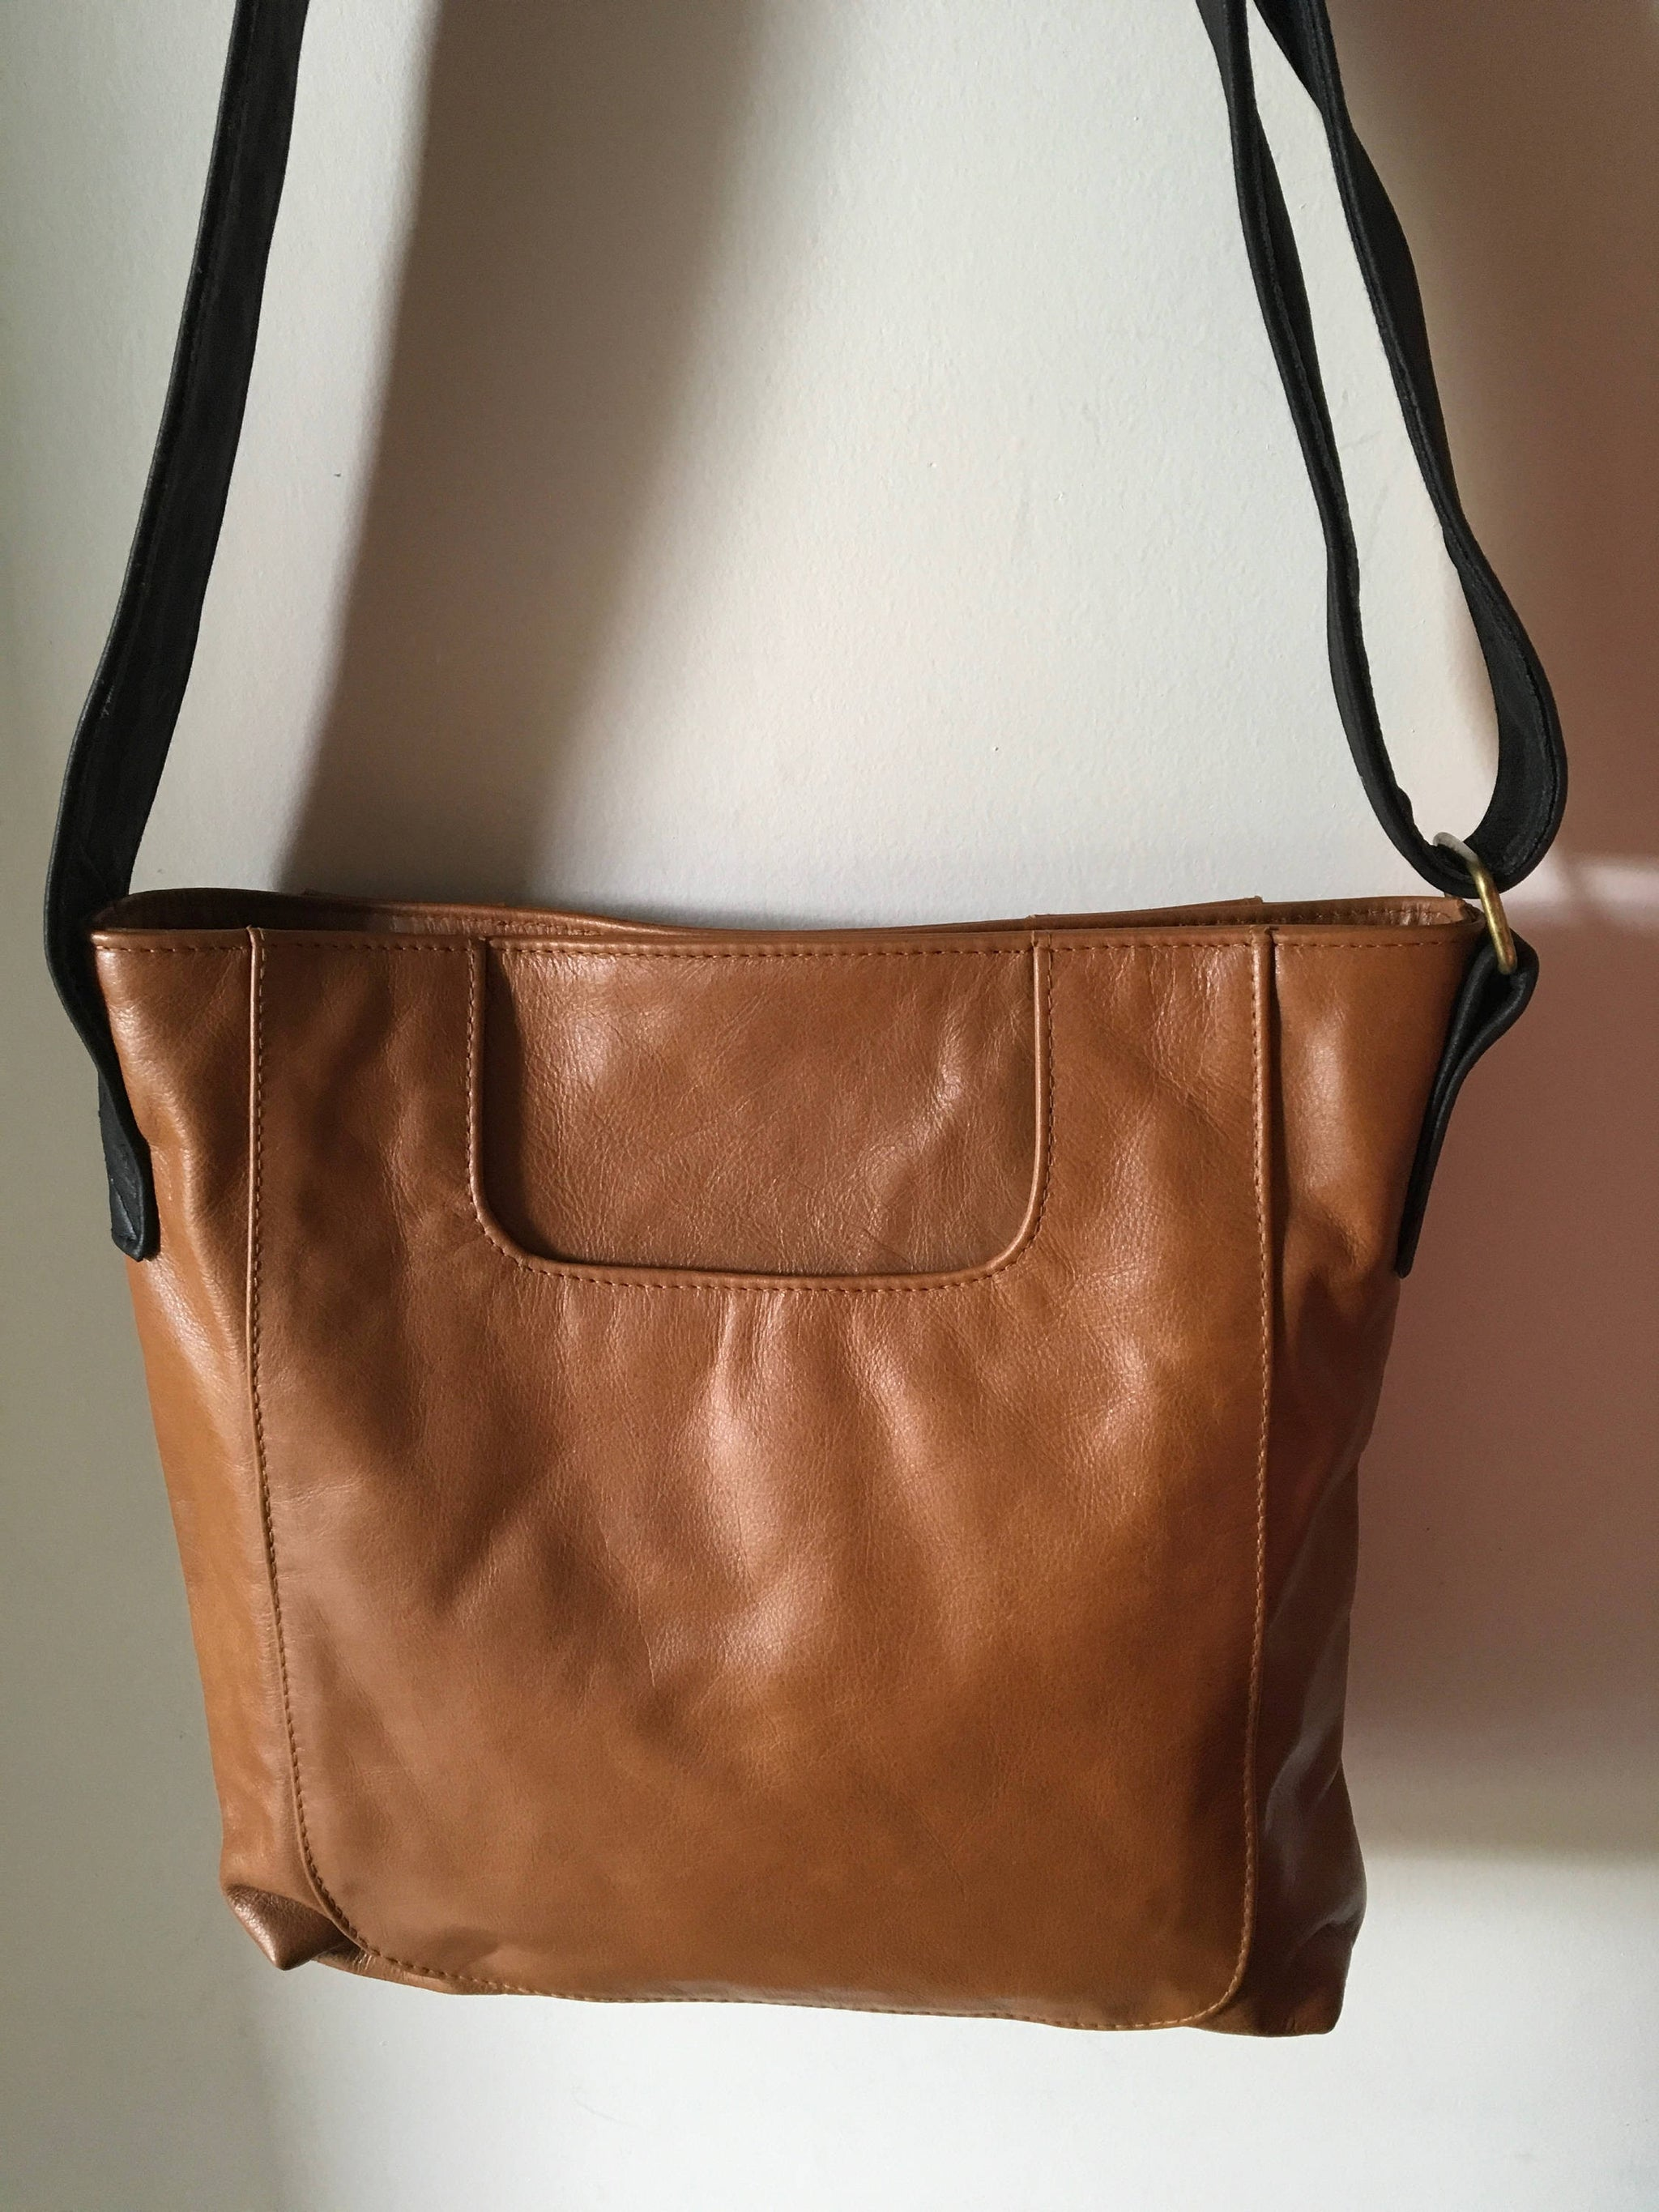 The Edge - Simple,stylish tan leather tote. Classic lines, deep pockets and strong shoulder strap this tan leather tote is the perfect shopping bag